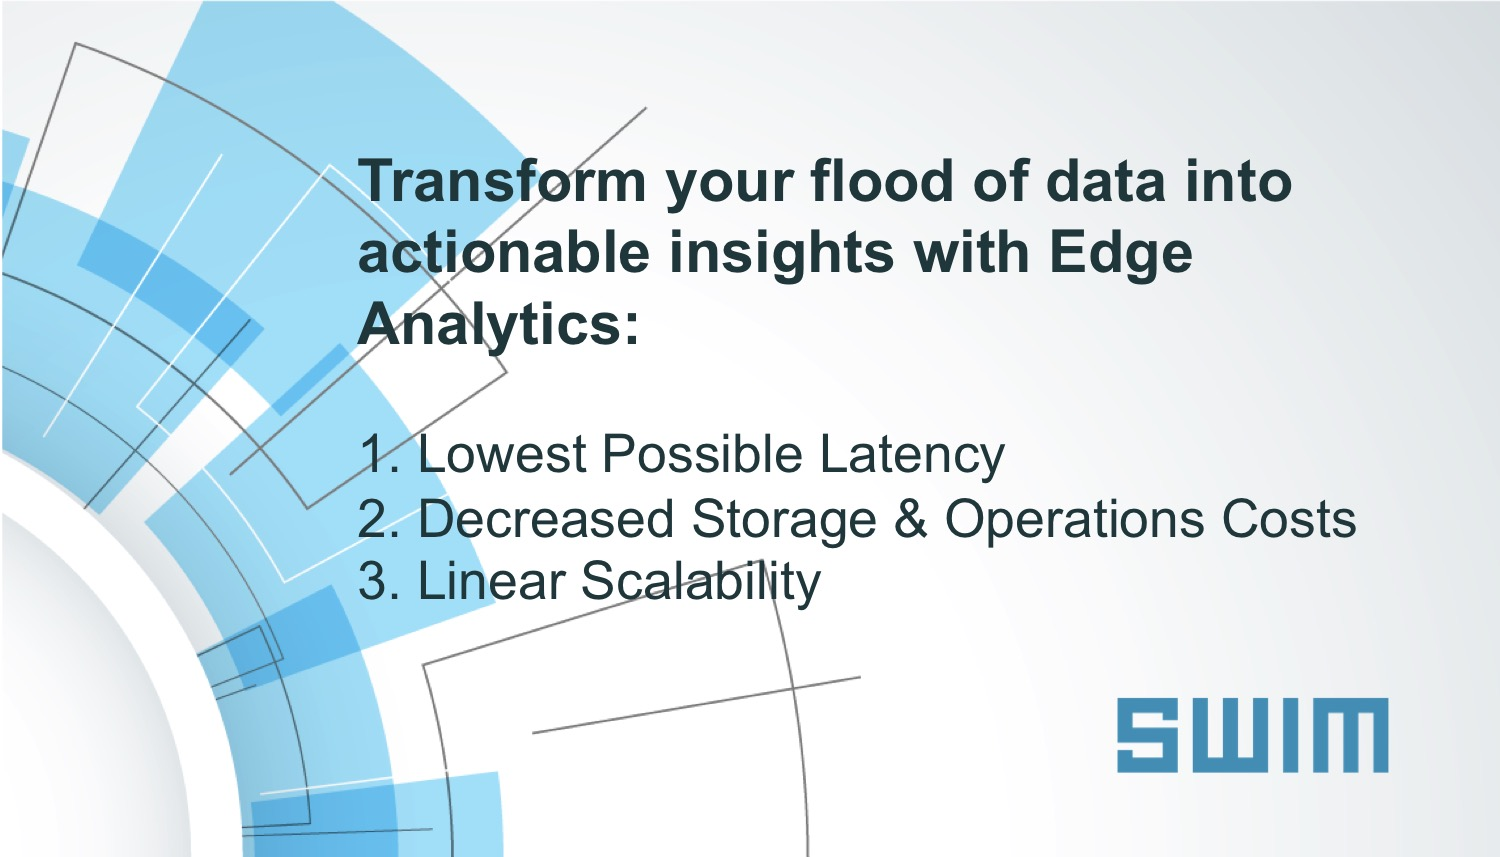 Three Benefits of Edge Analytics: 1. Lowest Possible Latency 2.Decreased Storage & Operations Costs 3. Linear Scalability | Swim Inc.